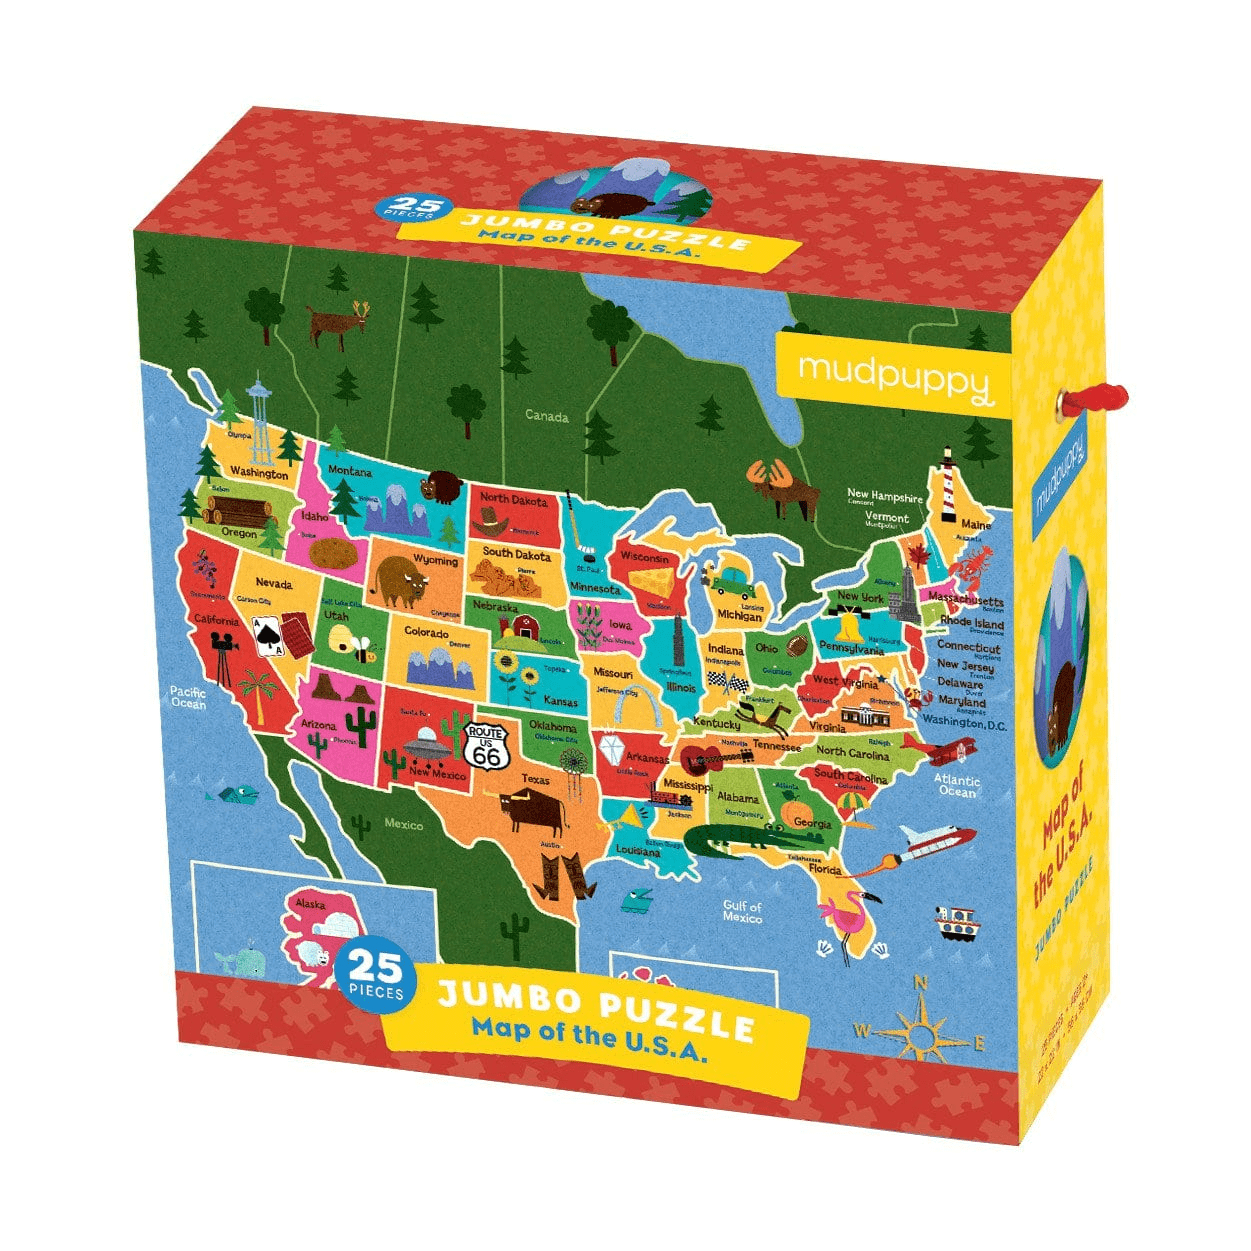 Map Of The U.s.a. Jumbo Puzzle - California Map Puzzle